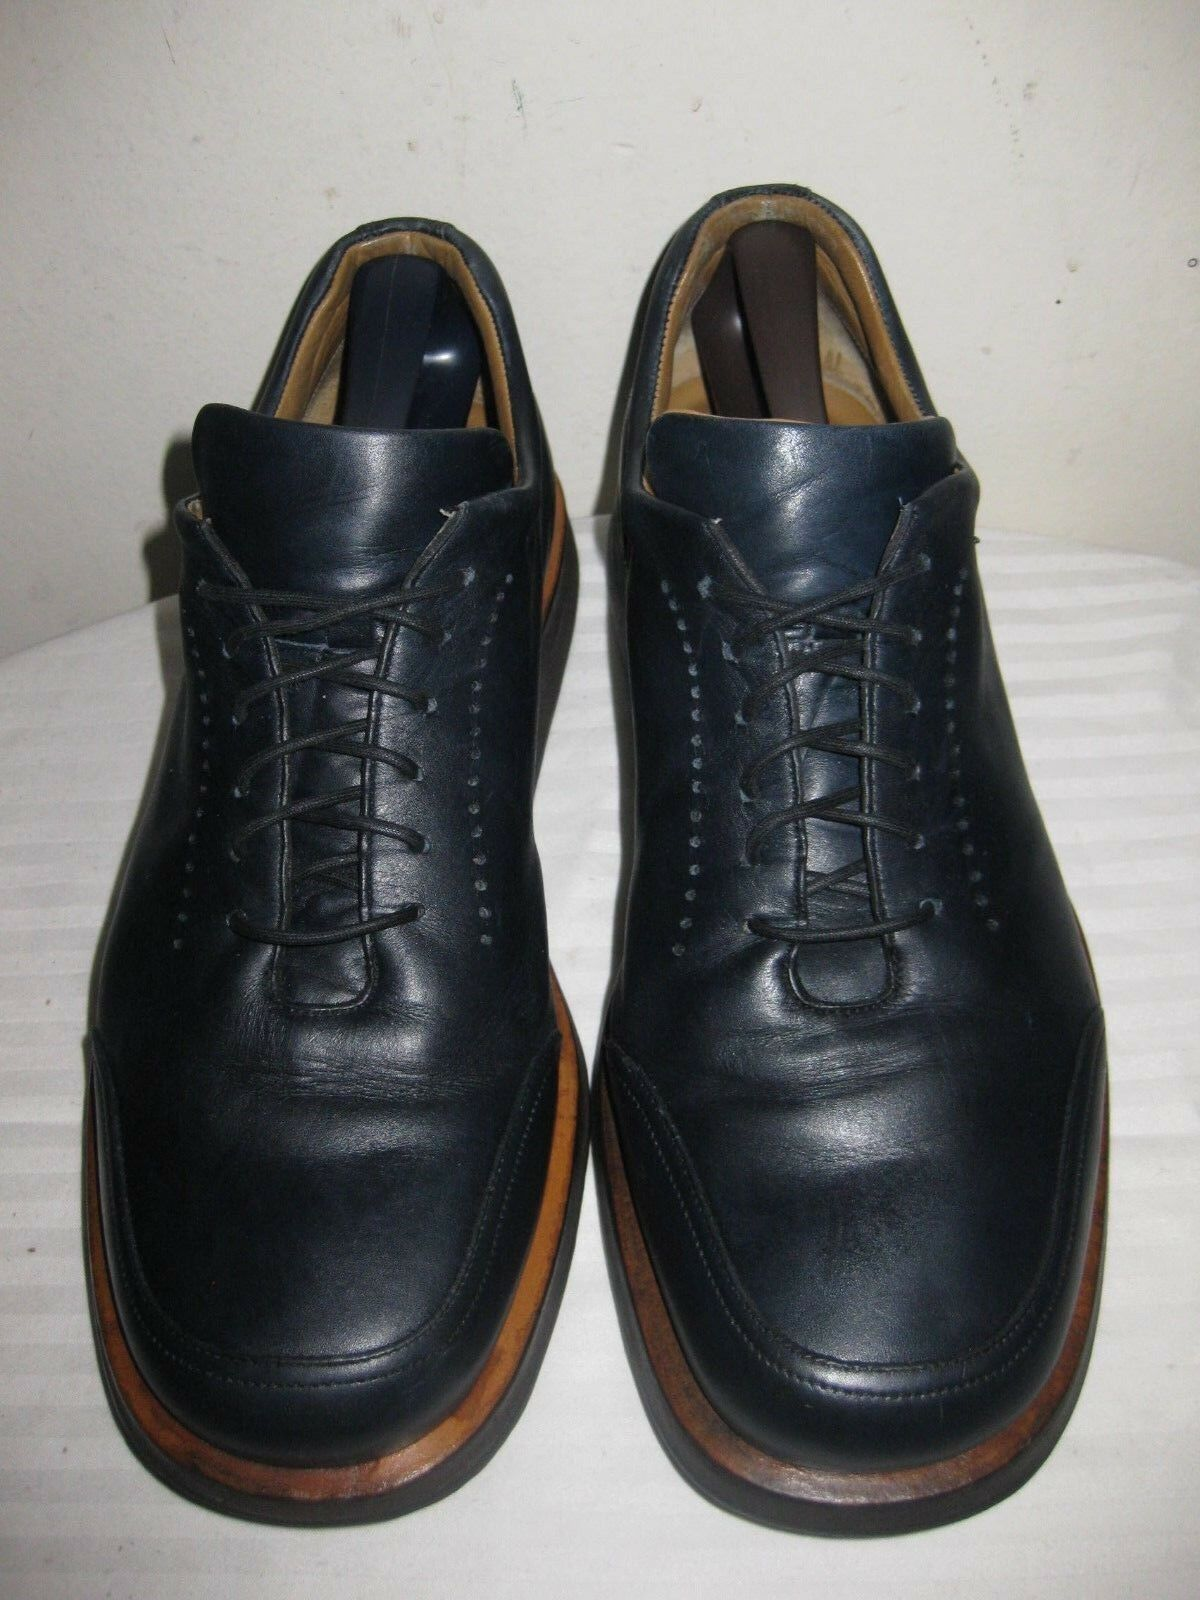 Bally Rutger Pelle Oxford  Lace Up Uomo Shoes Size 8 E Made In  Italy .